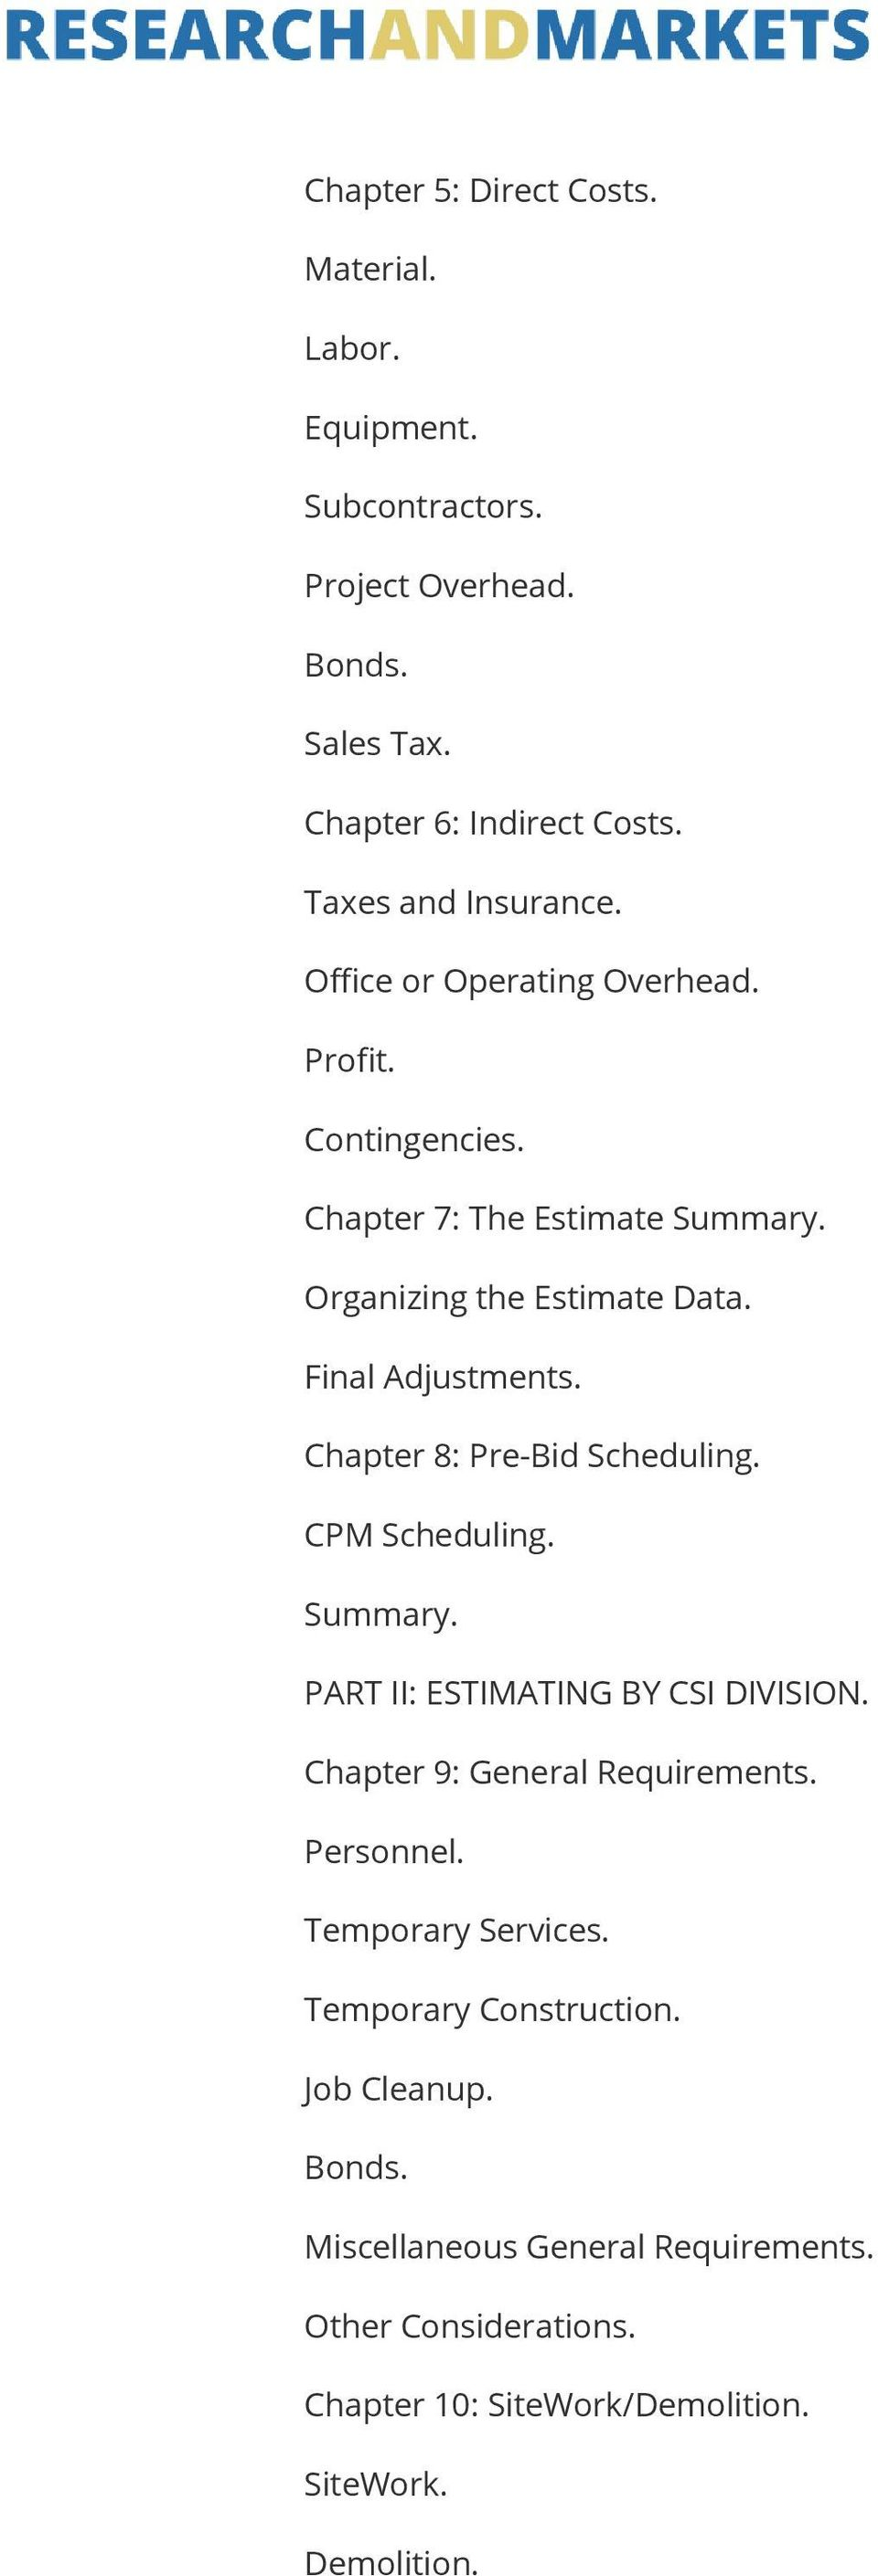 Final Adjustments. Chapter 8: Pre-Bid Scheduling. CPM Scheduling. Summary. PART II: ESTIMATING BY CSI DIVISION. Chapter 9: General Requirements.